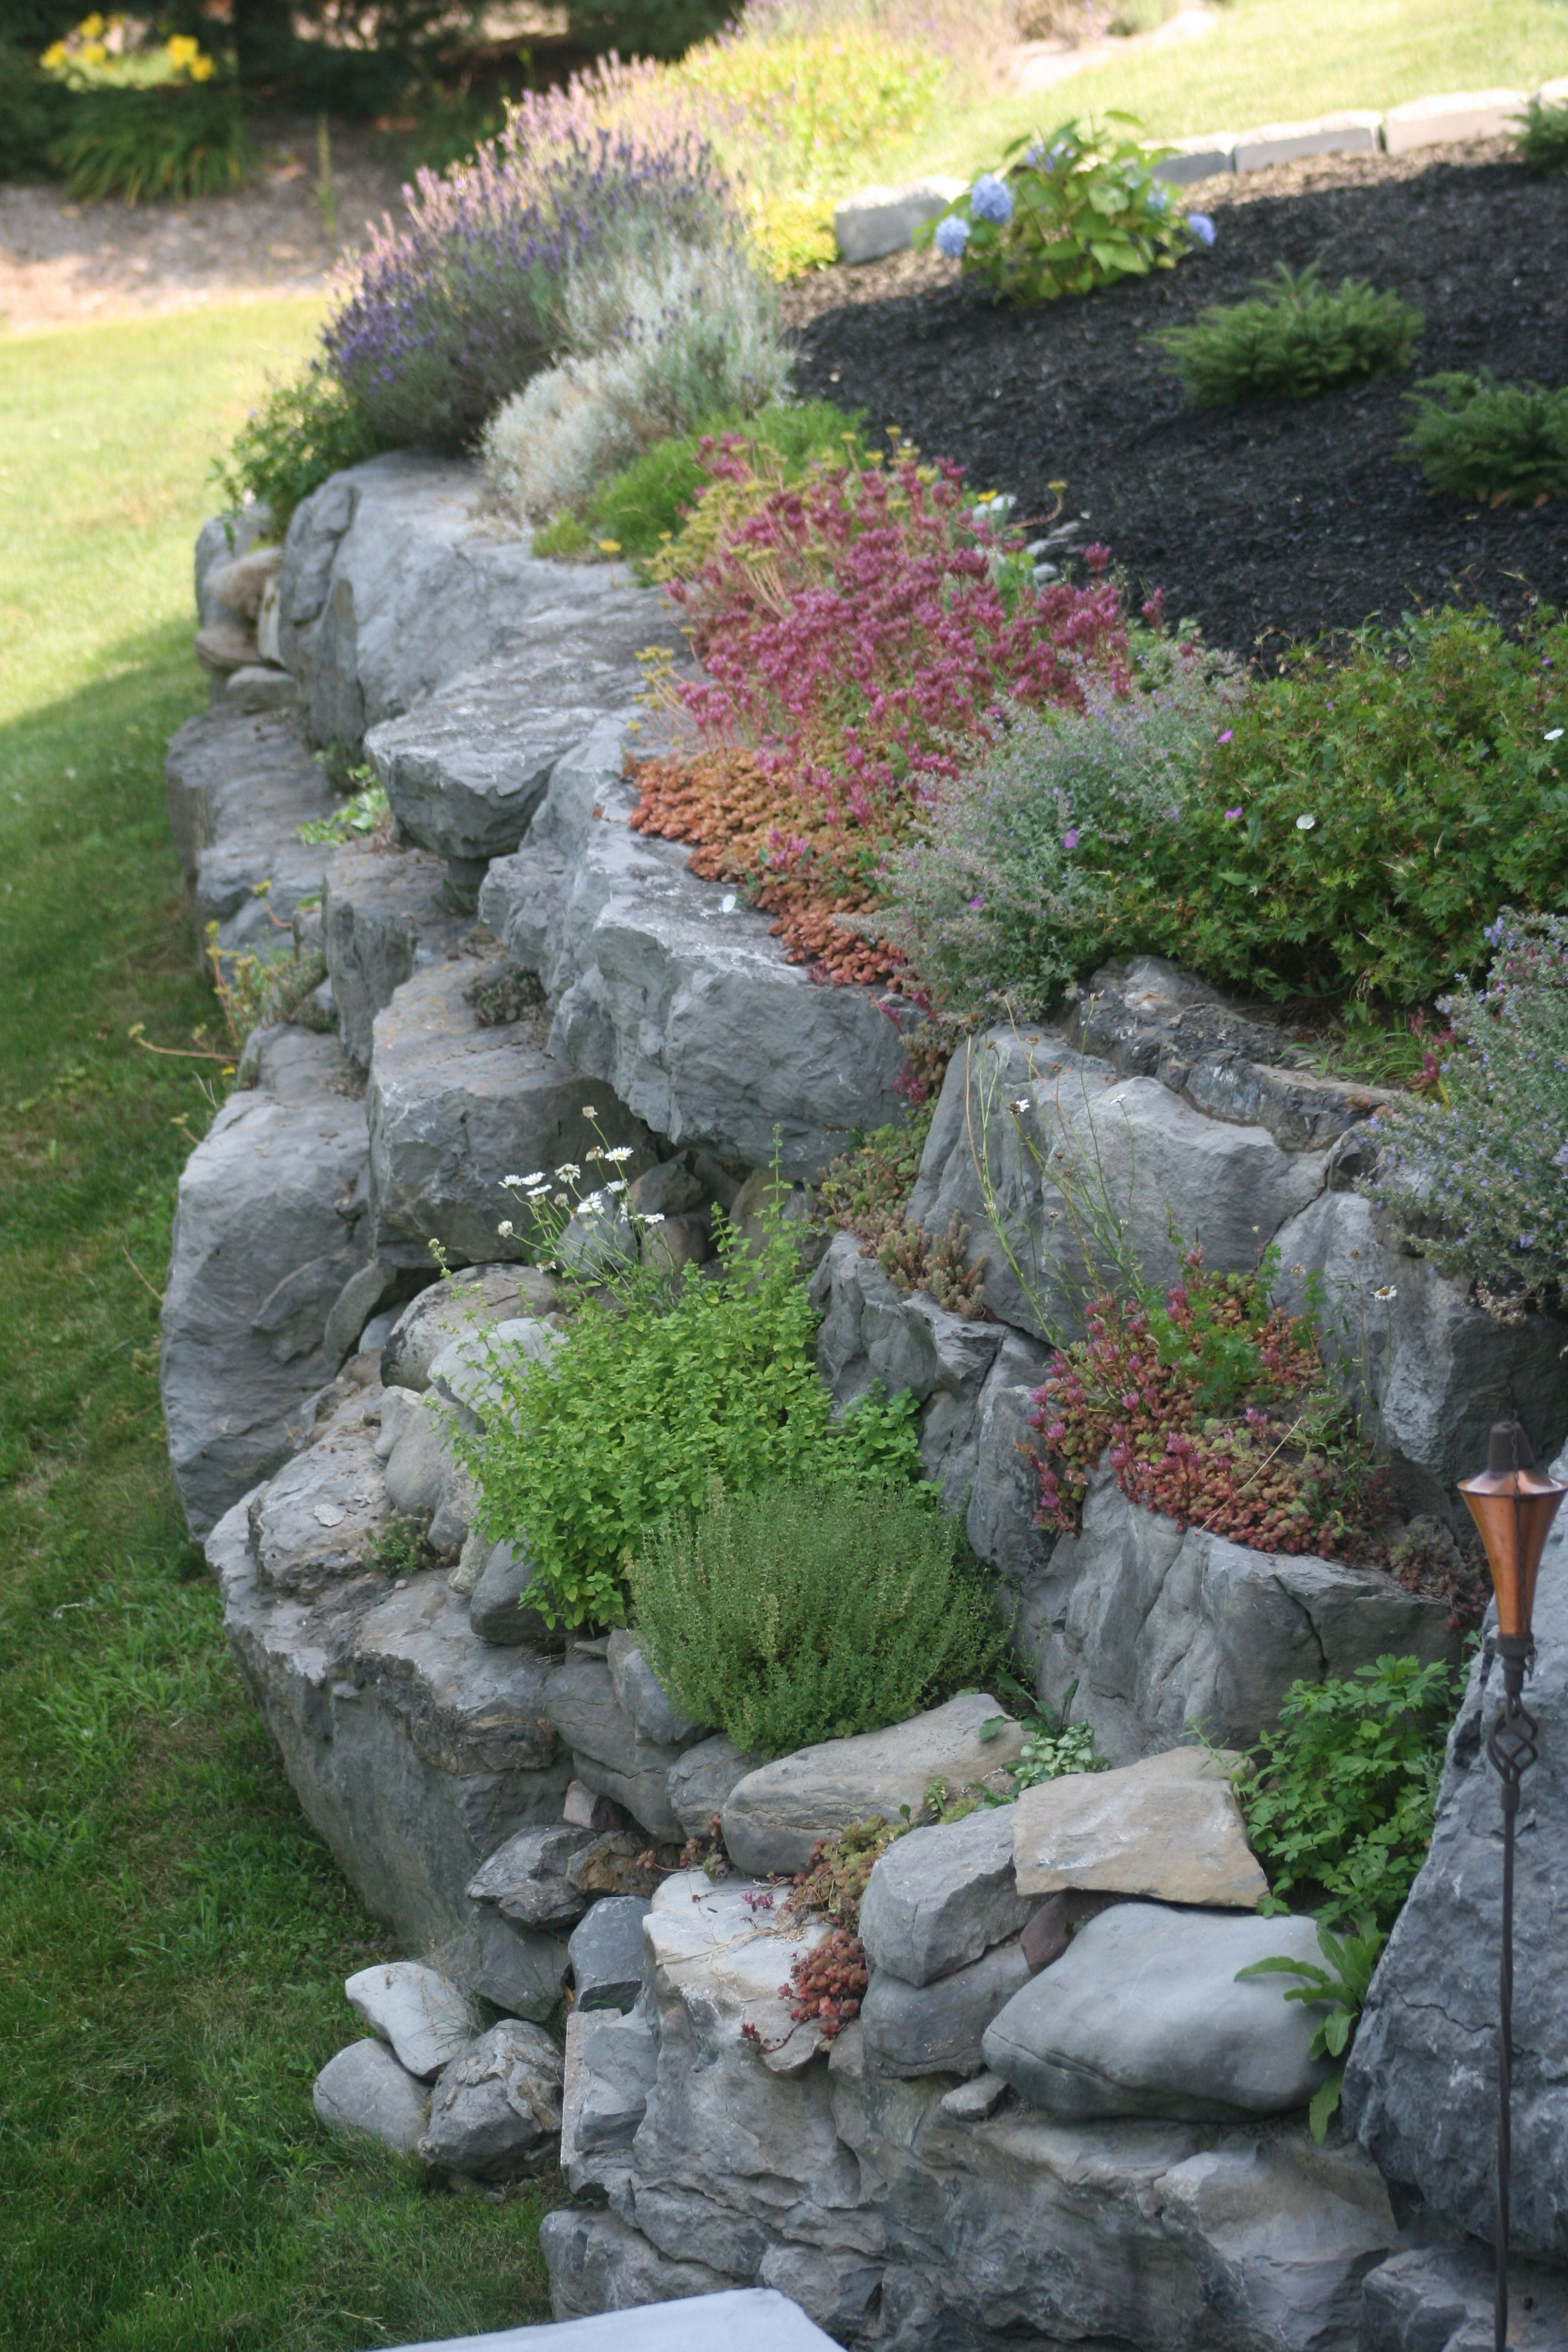 Rock Garden On Retaining Wall More Champ Gardens Rock Garden Design Rock Garden Landscaping Landscaping With Rocks